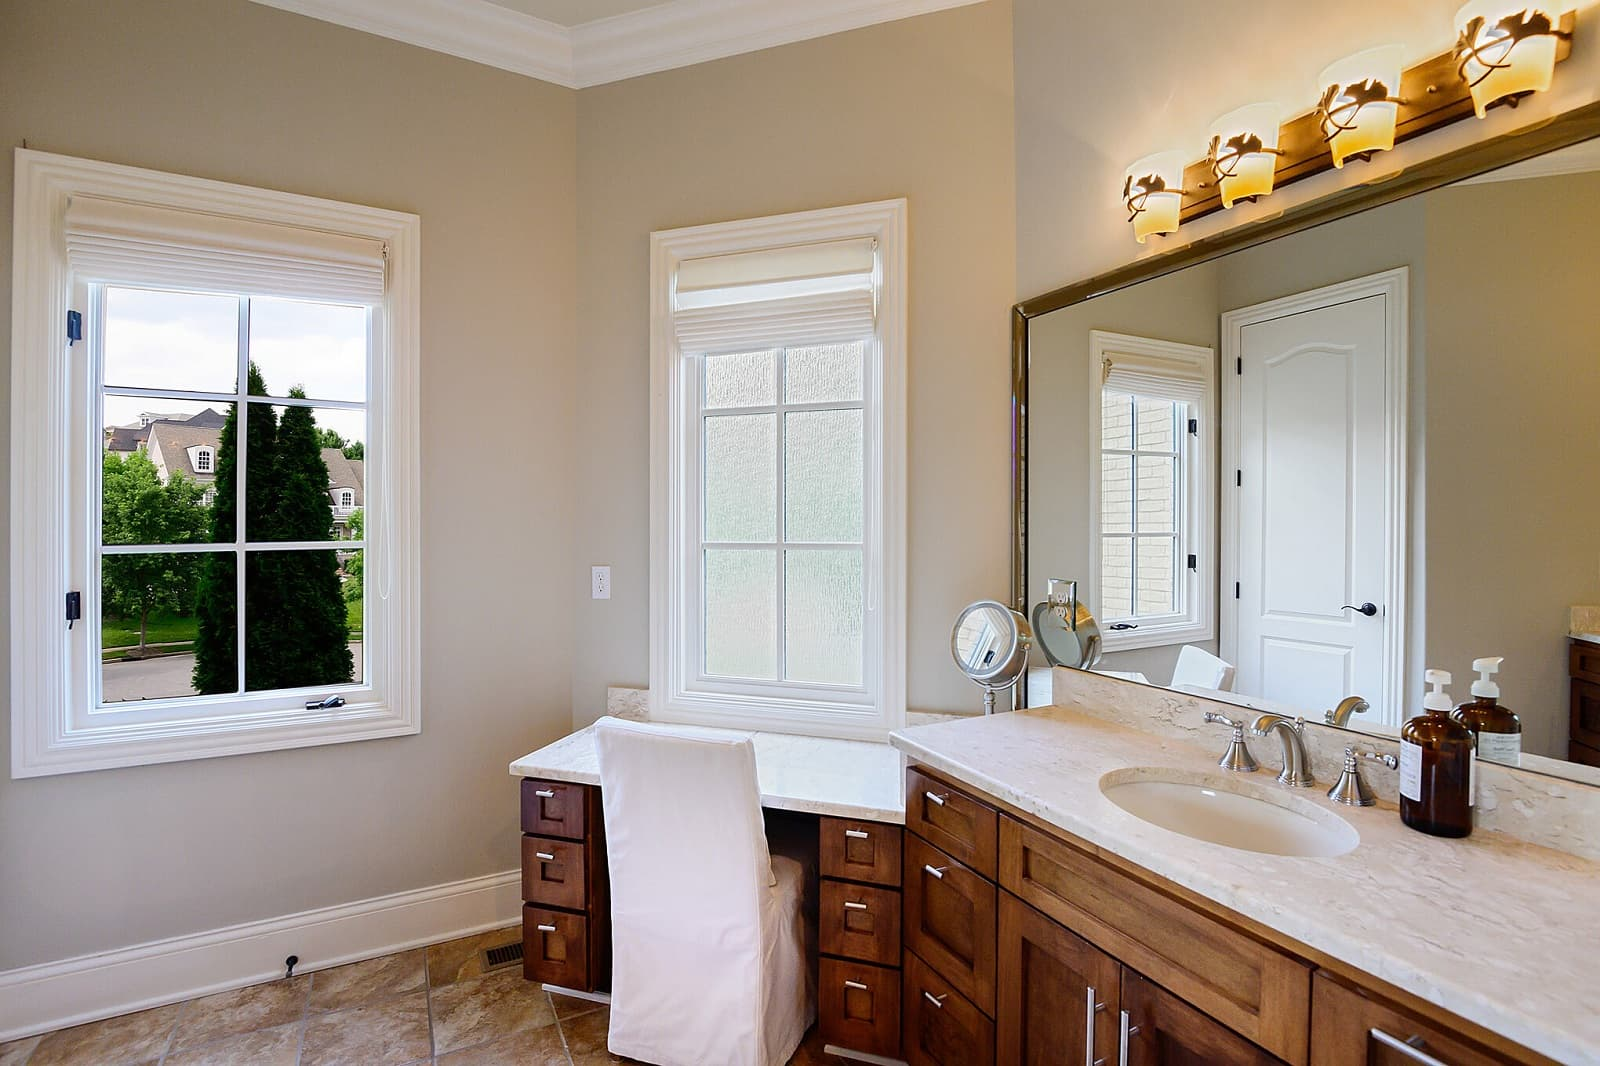 Real Estate Photography in Brentwood - TN - USA - Bathroom View